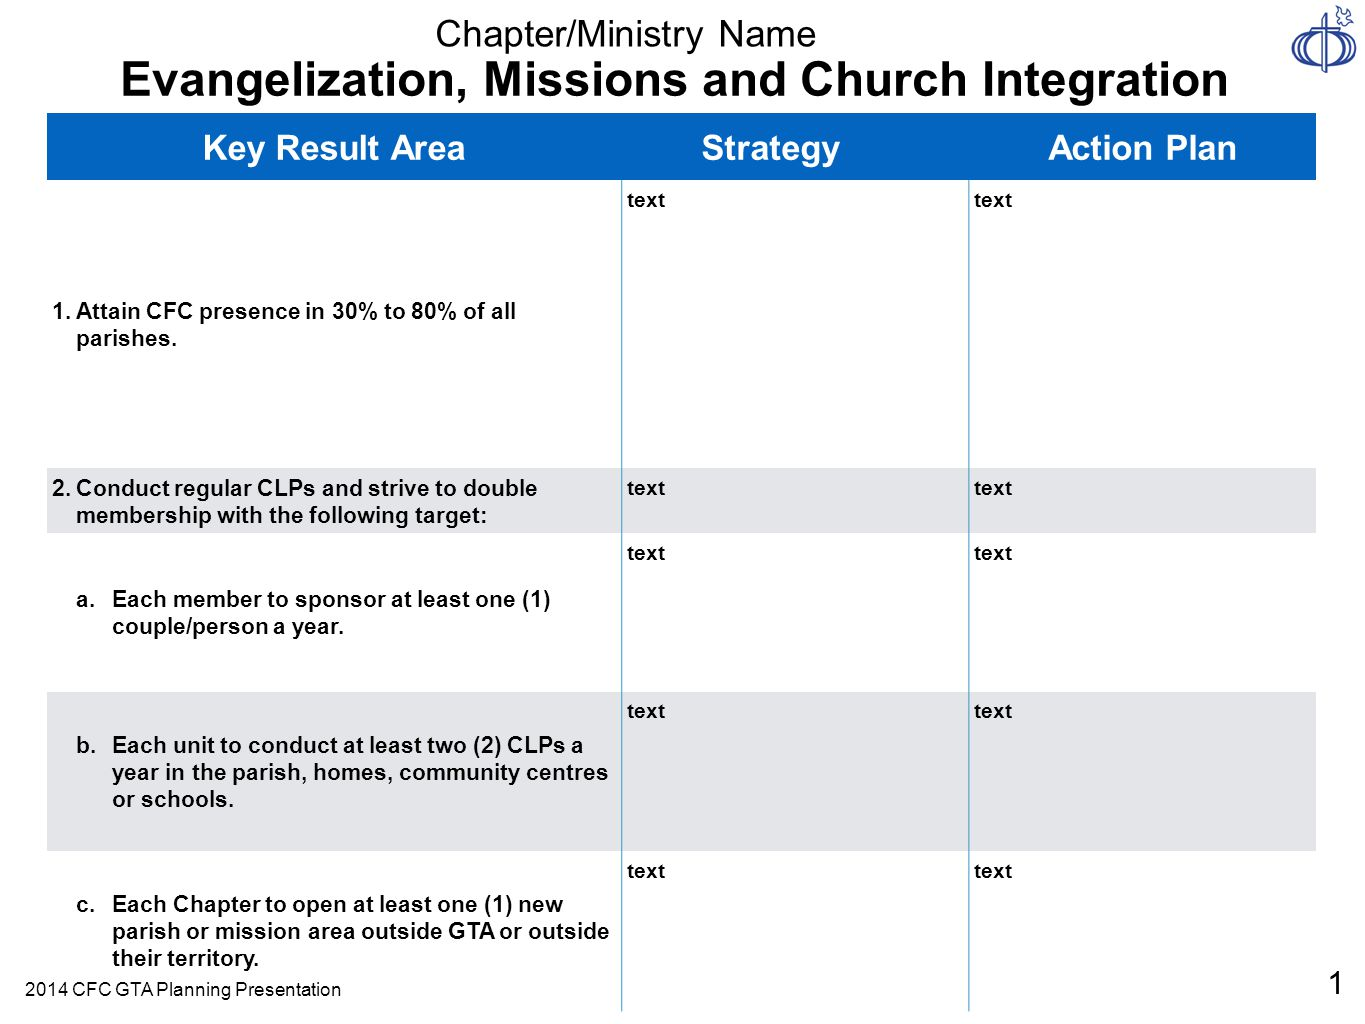 Key Result AreaStrategyAction Plan 1.Attain CFC presence in 30% to 80% of all parishes.